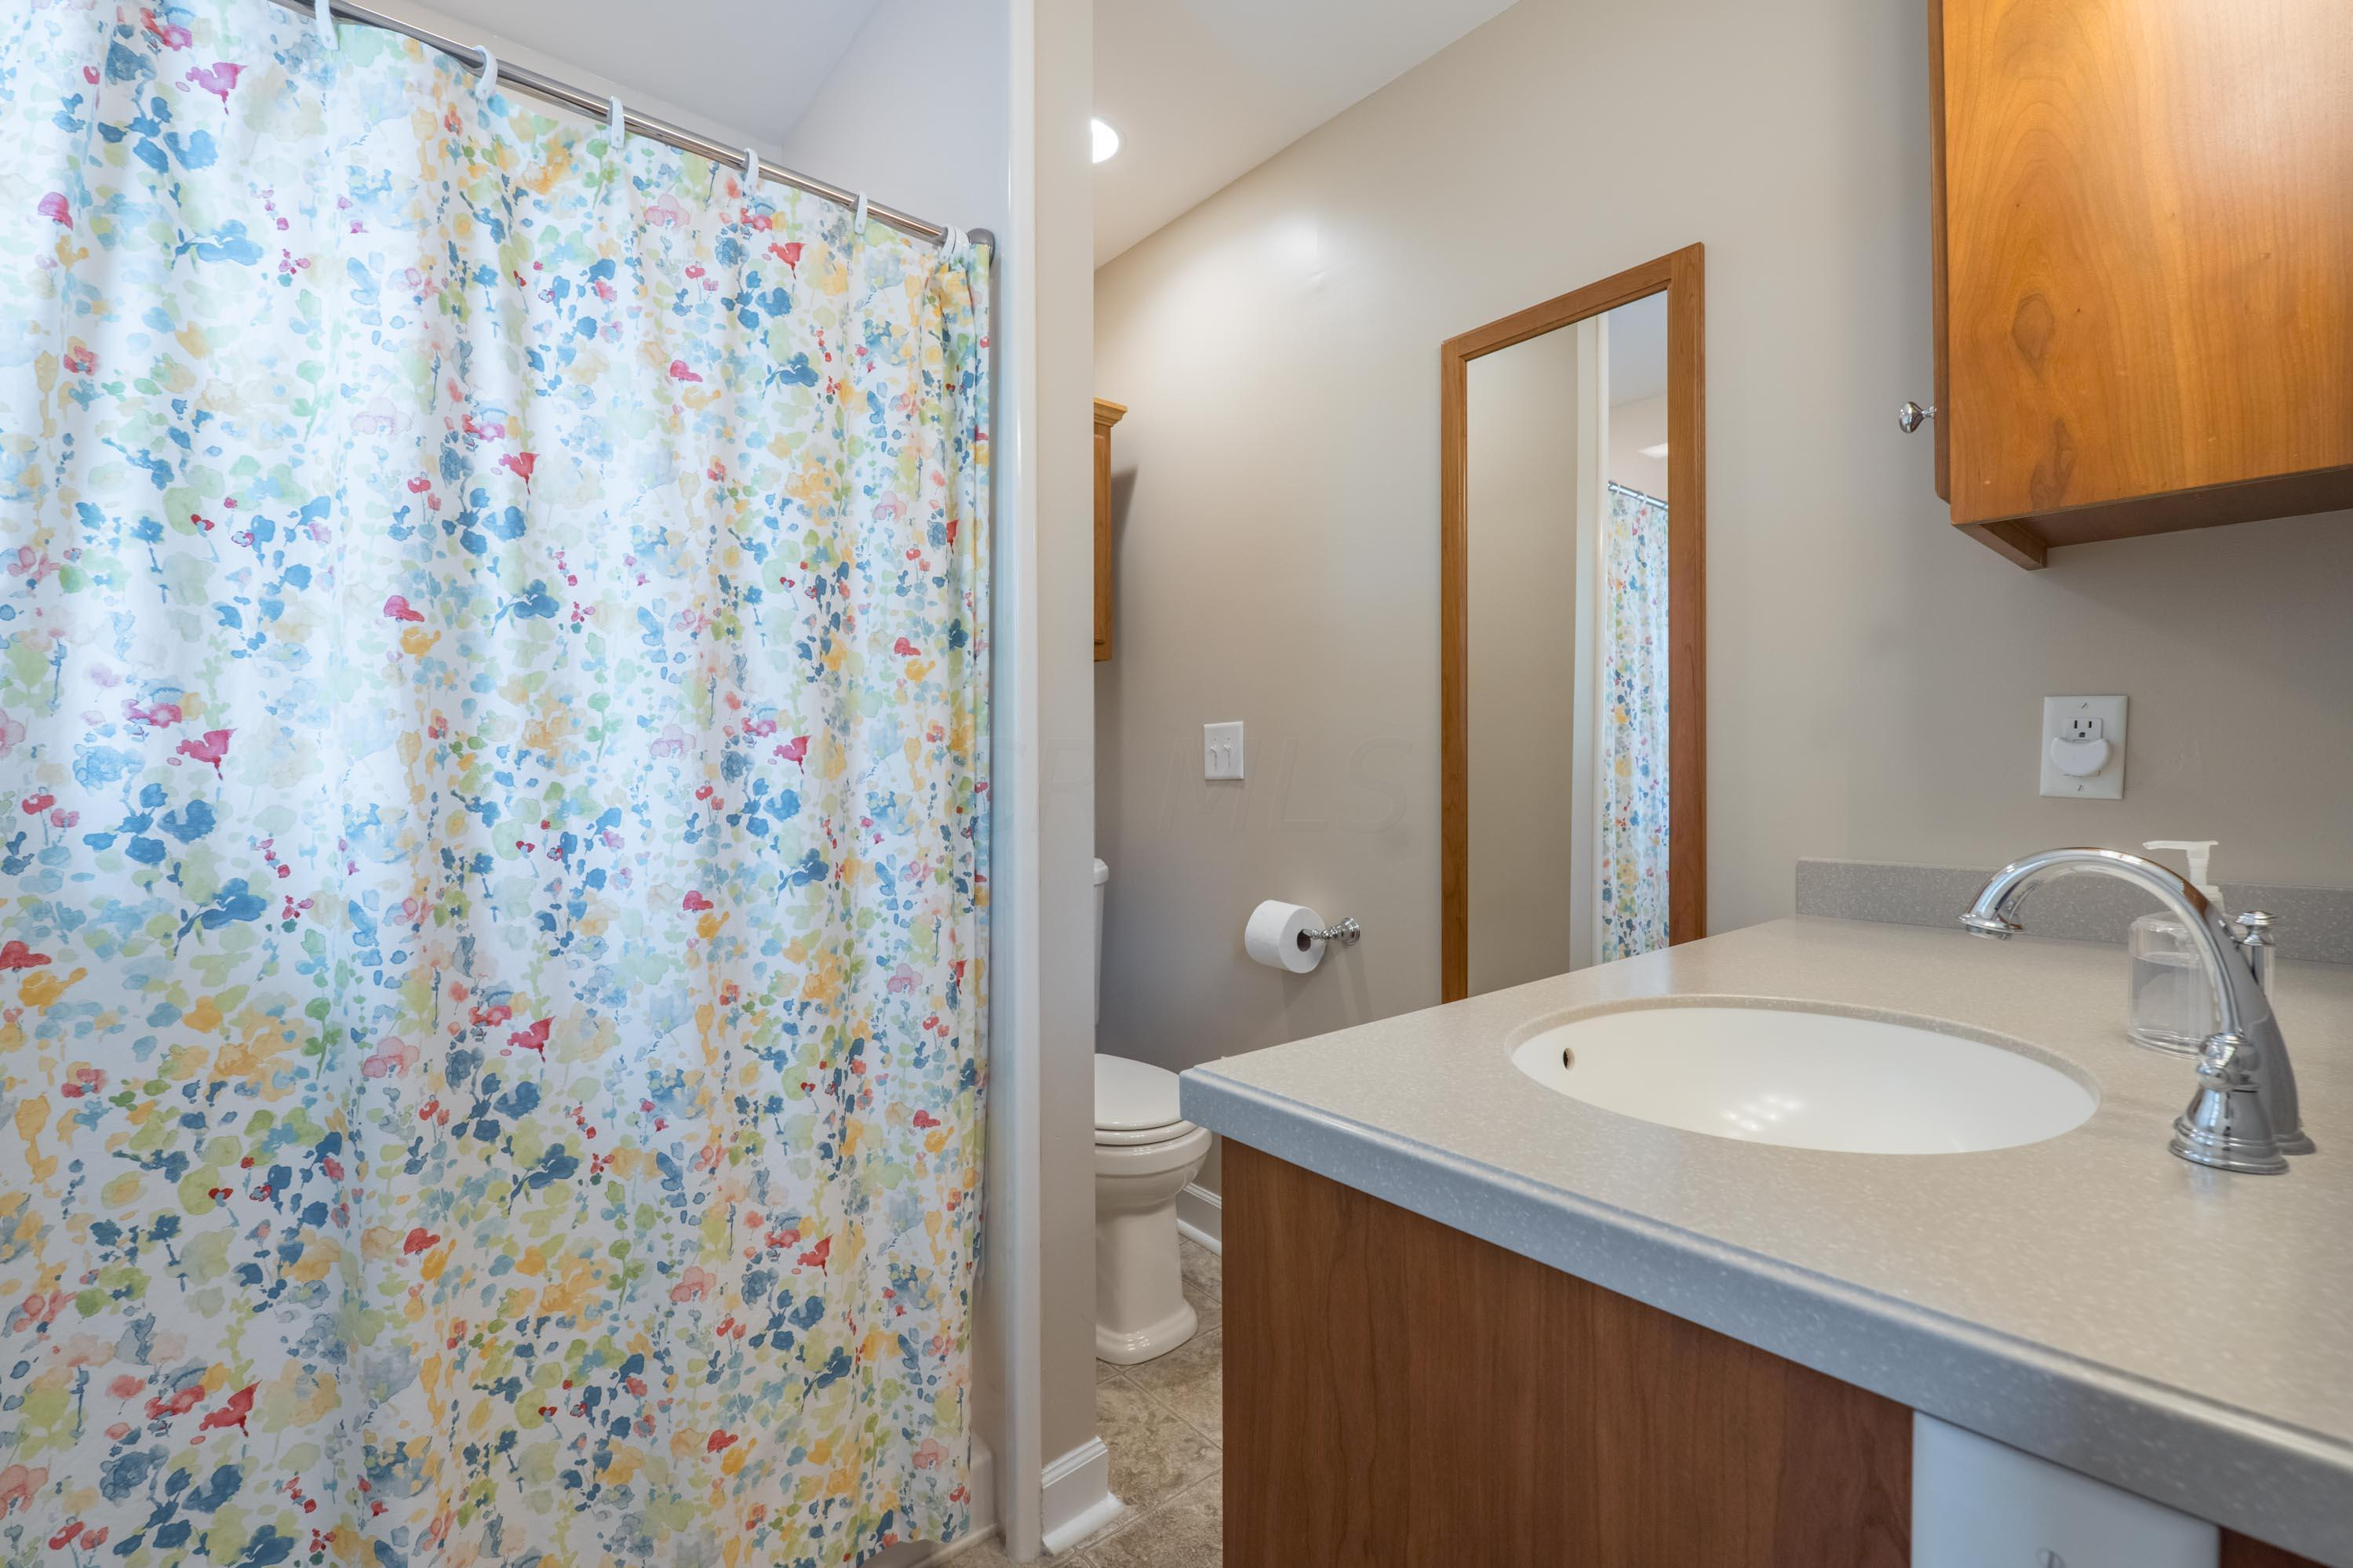 3687 Ridgewood Drive, Hilliard, Ohio 43026, 3 Bedrooms Bedrooms, ,2 BathroomsBathrooms,Residential,For Sale,Ridgewood,220020355